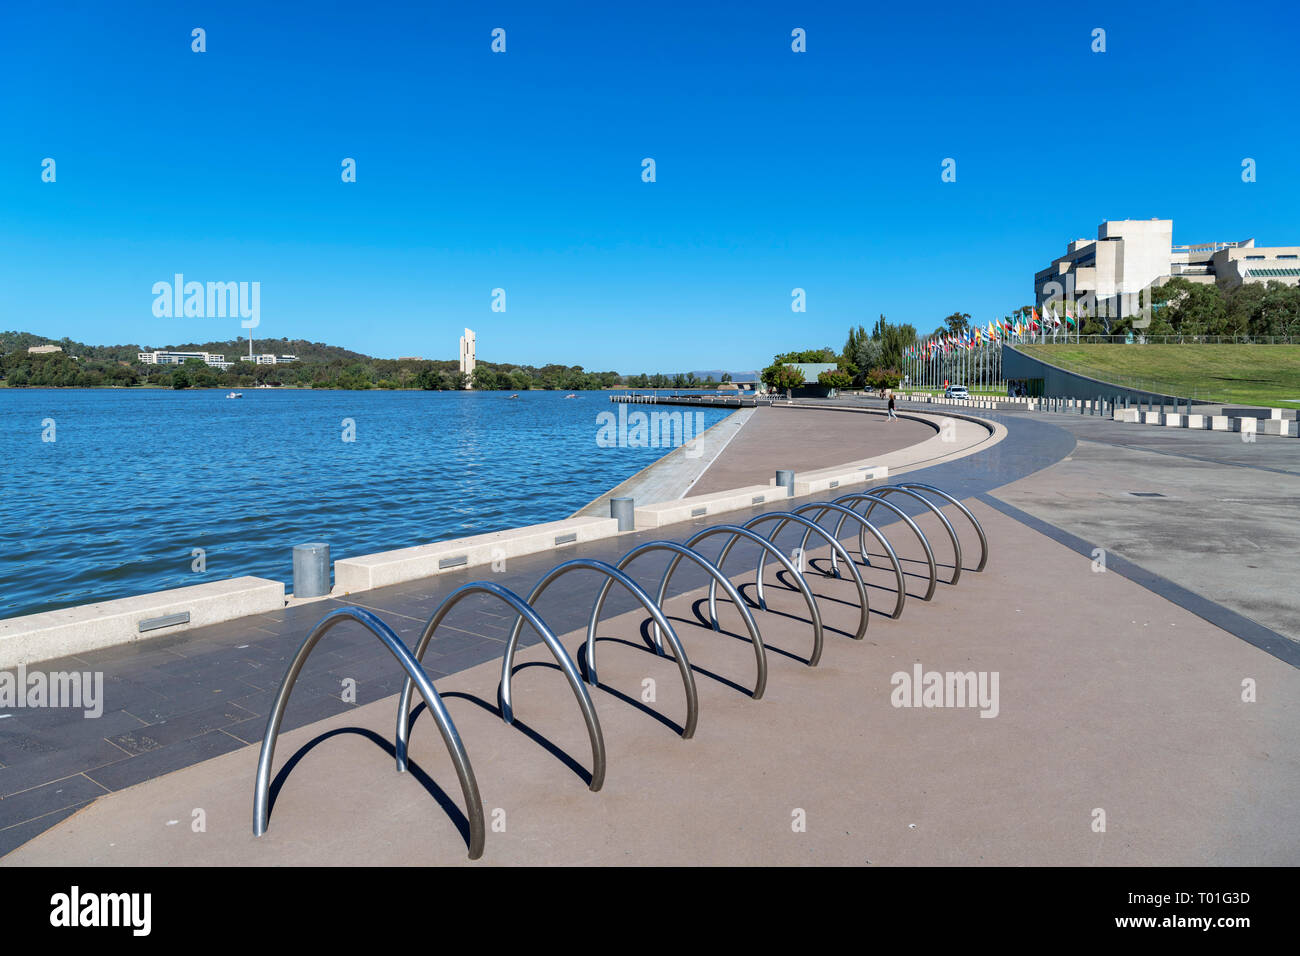 The shores of Lake Burley Griffin in the Parliamentary Triangle, Canberra, Australian Capital Territory, Australia - Stock Image